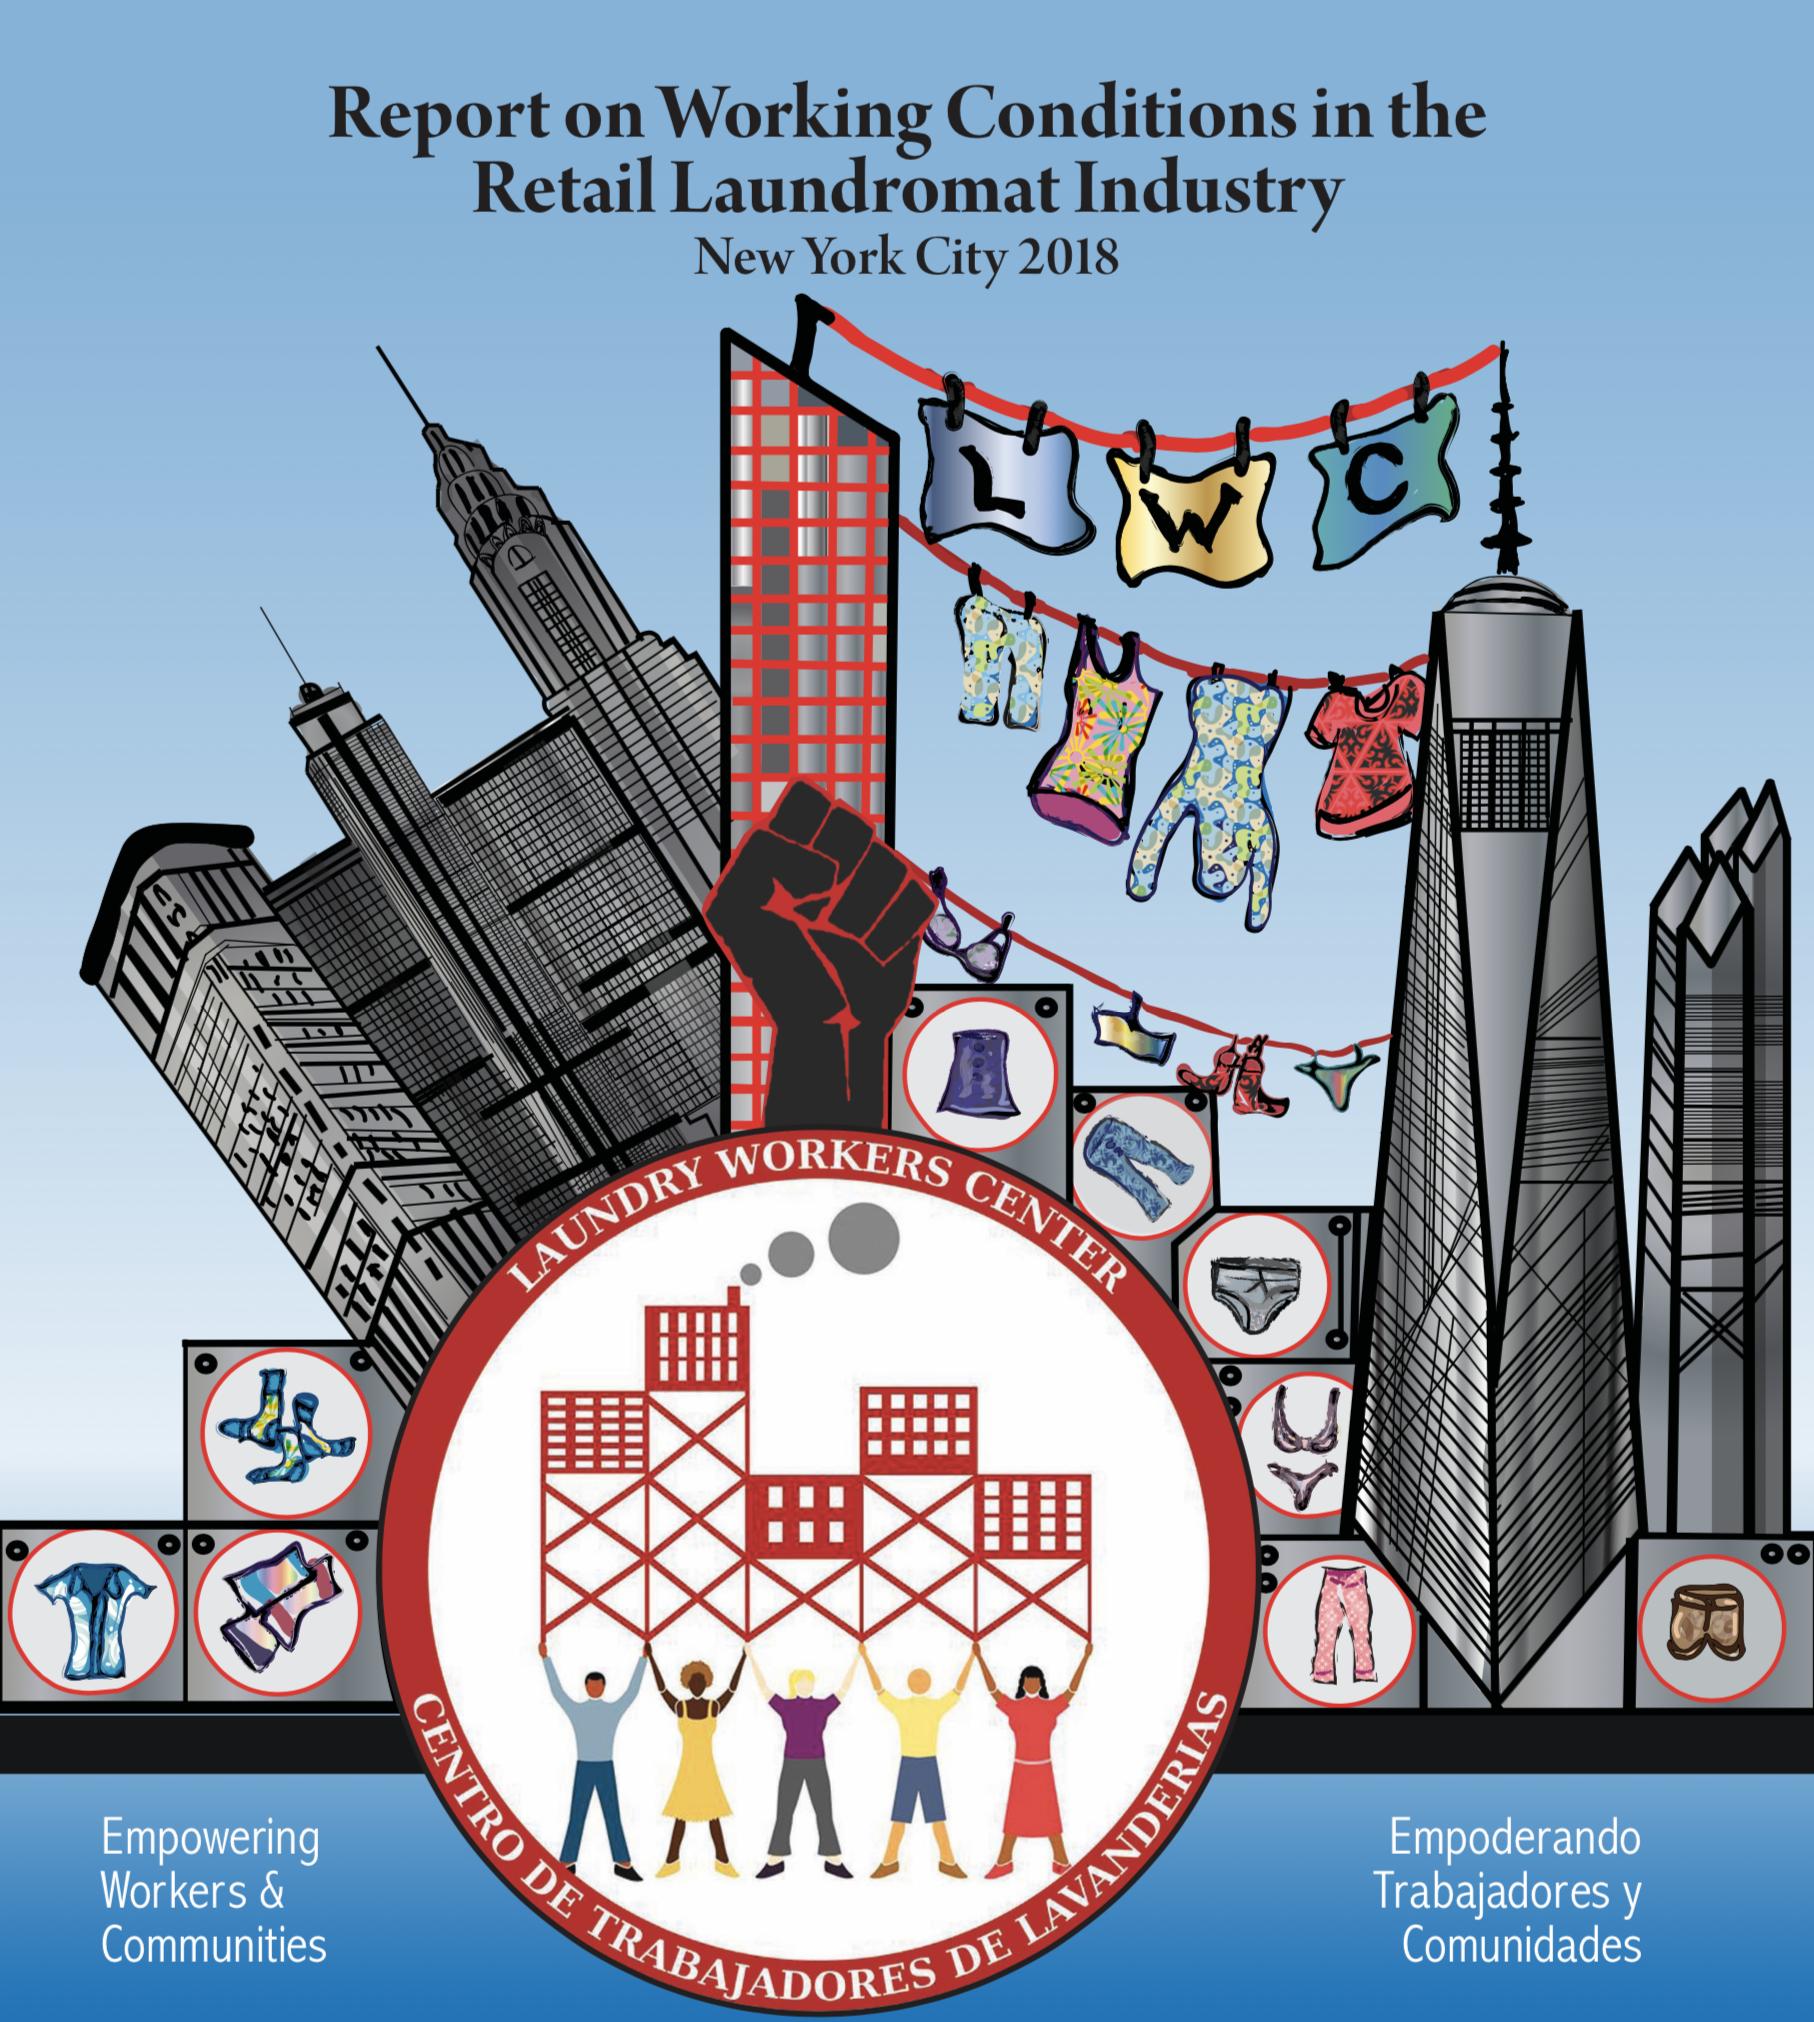 Report on Working Conditions in the Retail Laundromat Industry